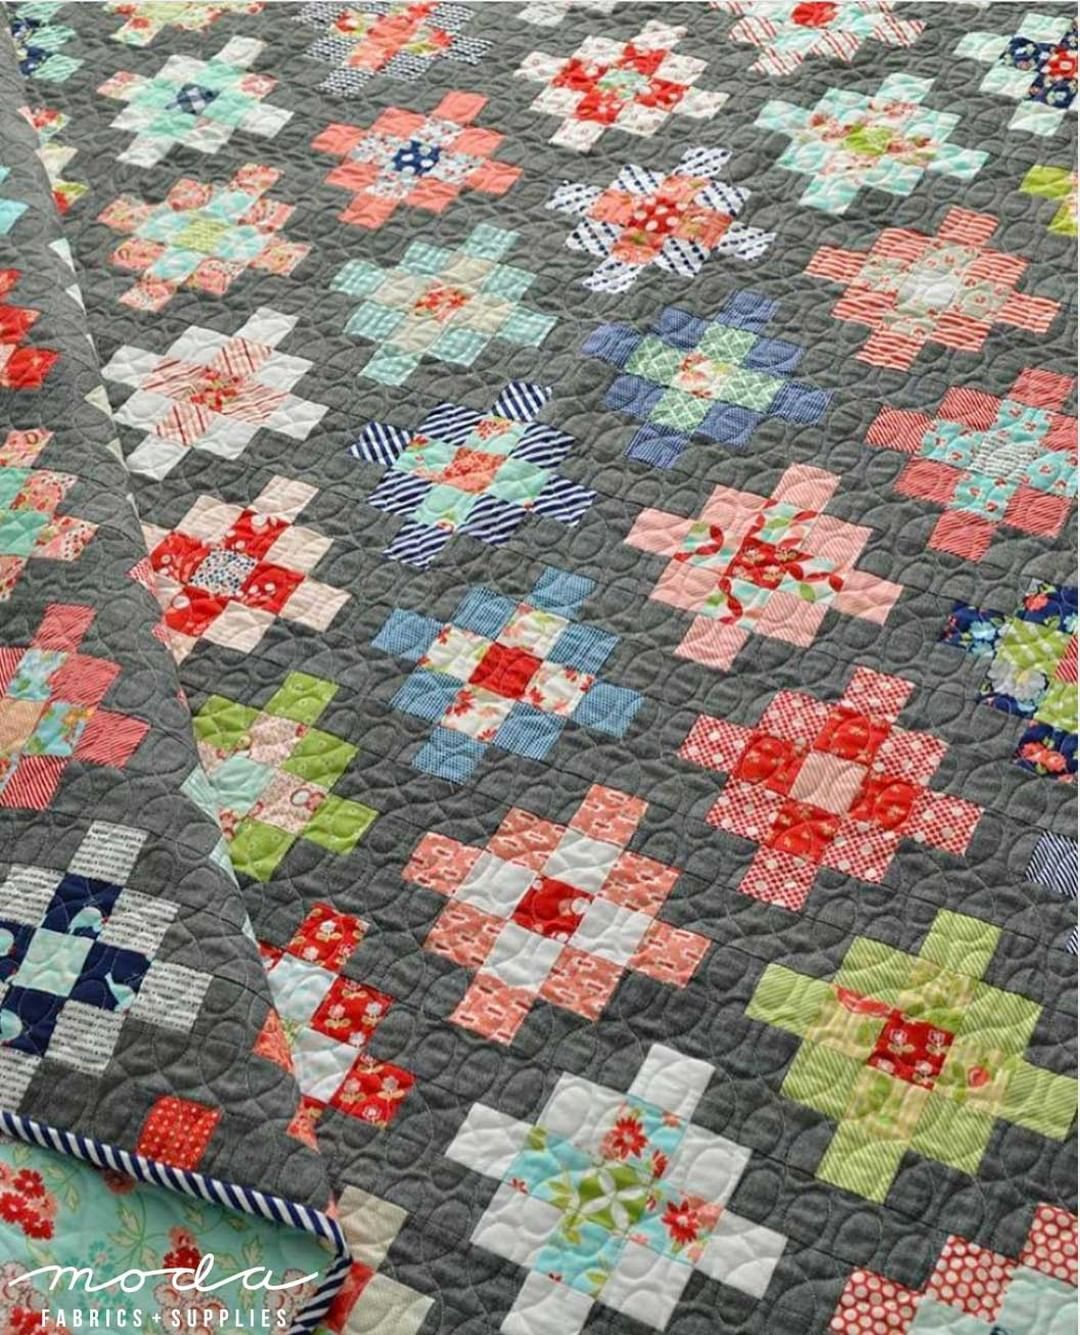 """MODA Fabric + Supplies on Instagram: """"This quilt Takes the Cake - two Layer Cakes.  Camille Roskelley of Thimbleblossoms made this awesome scrap quilt using a mix of 10"""